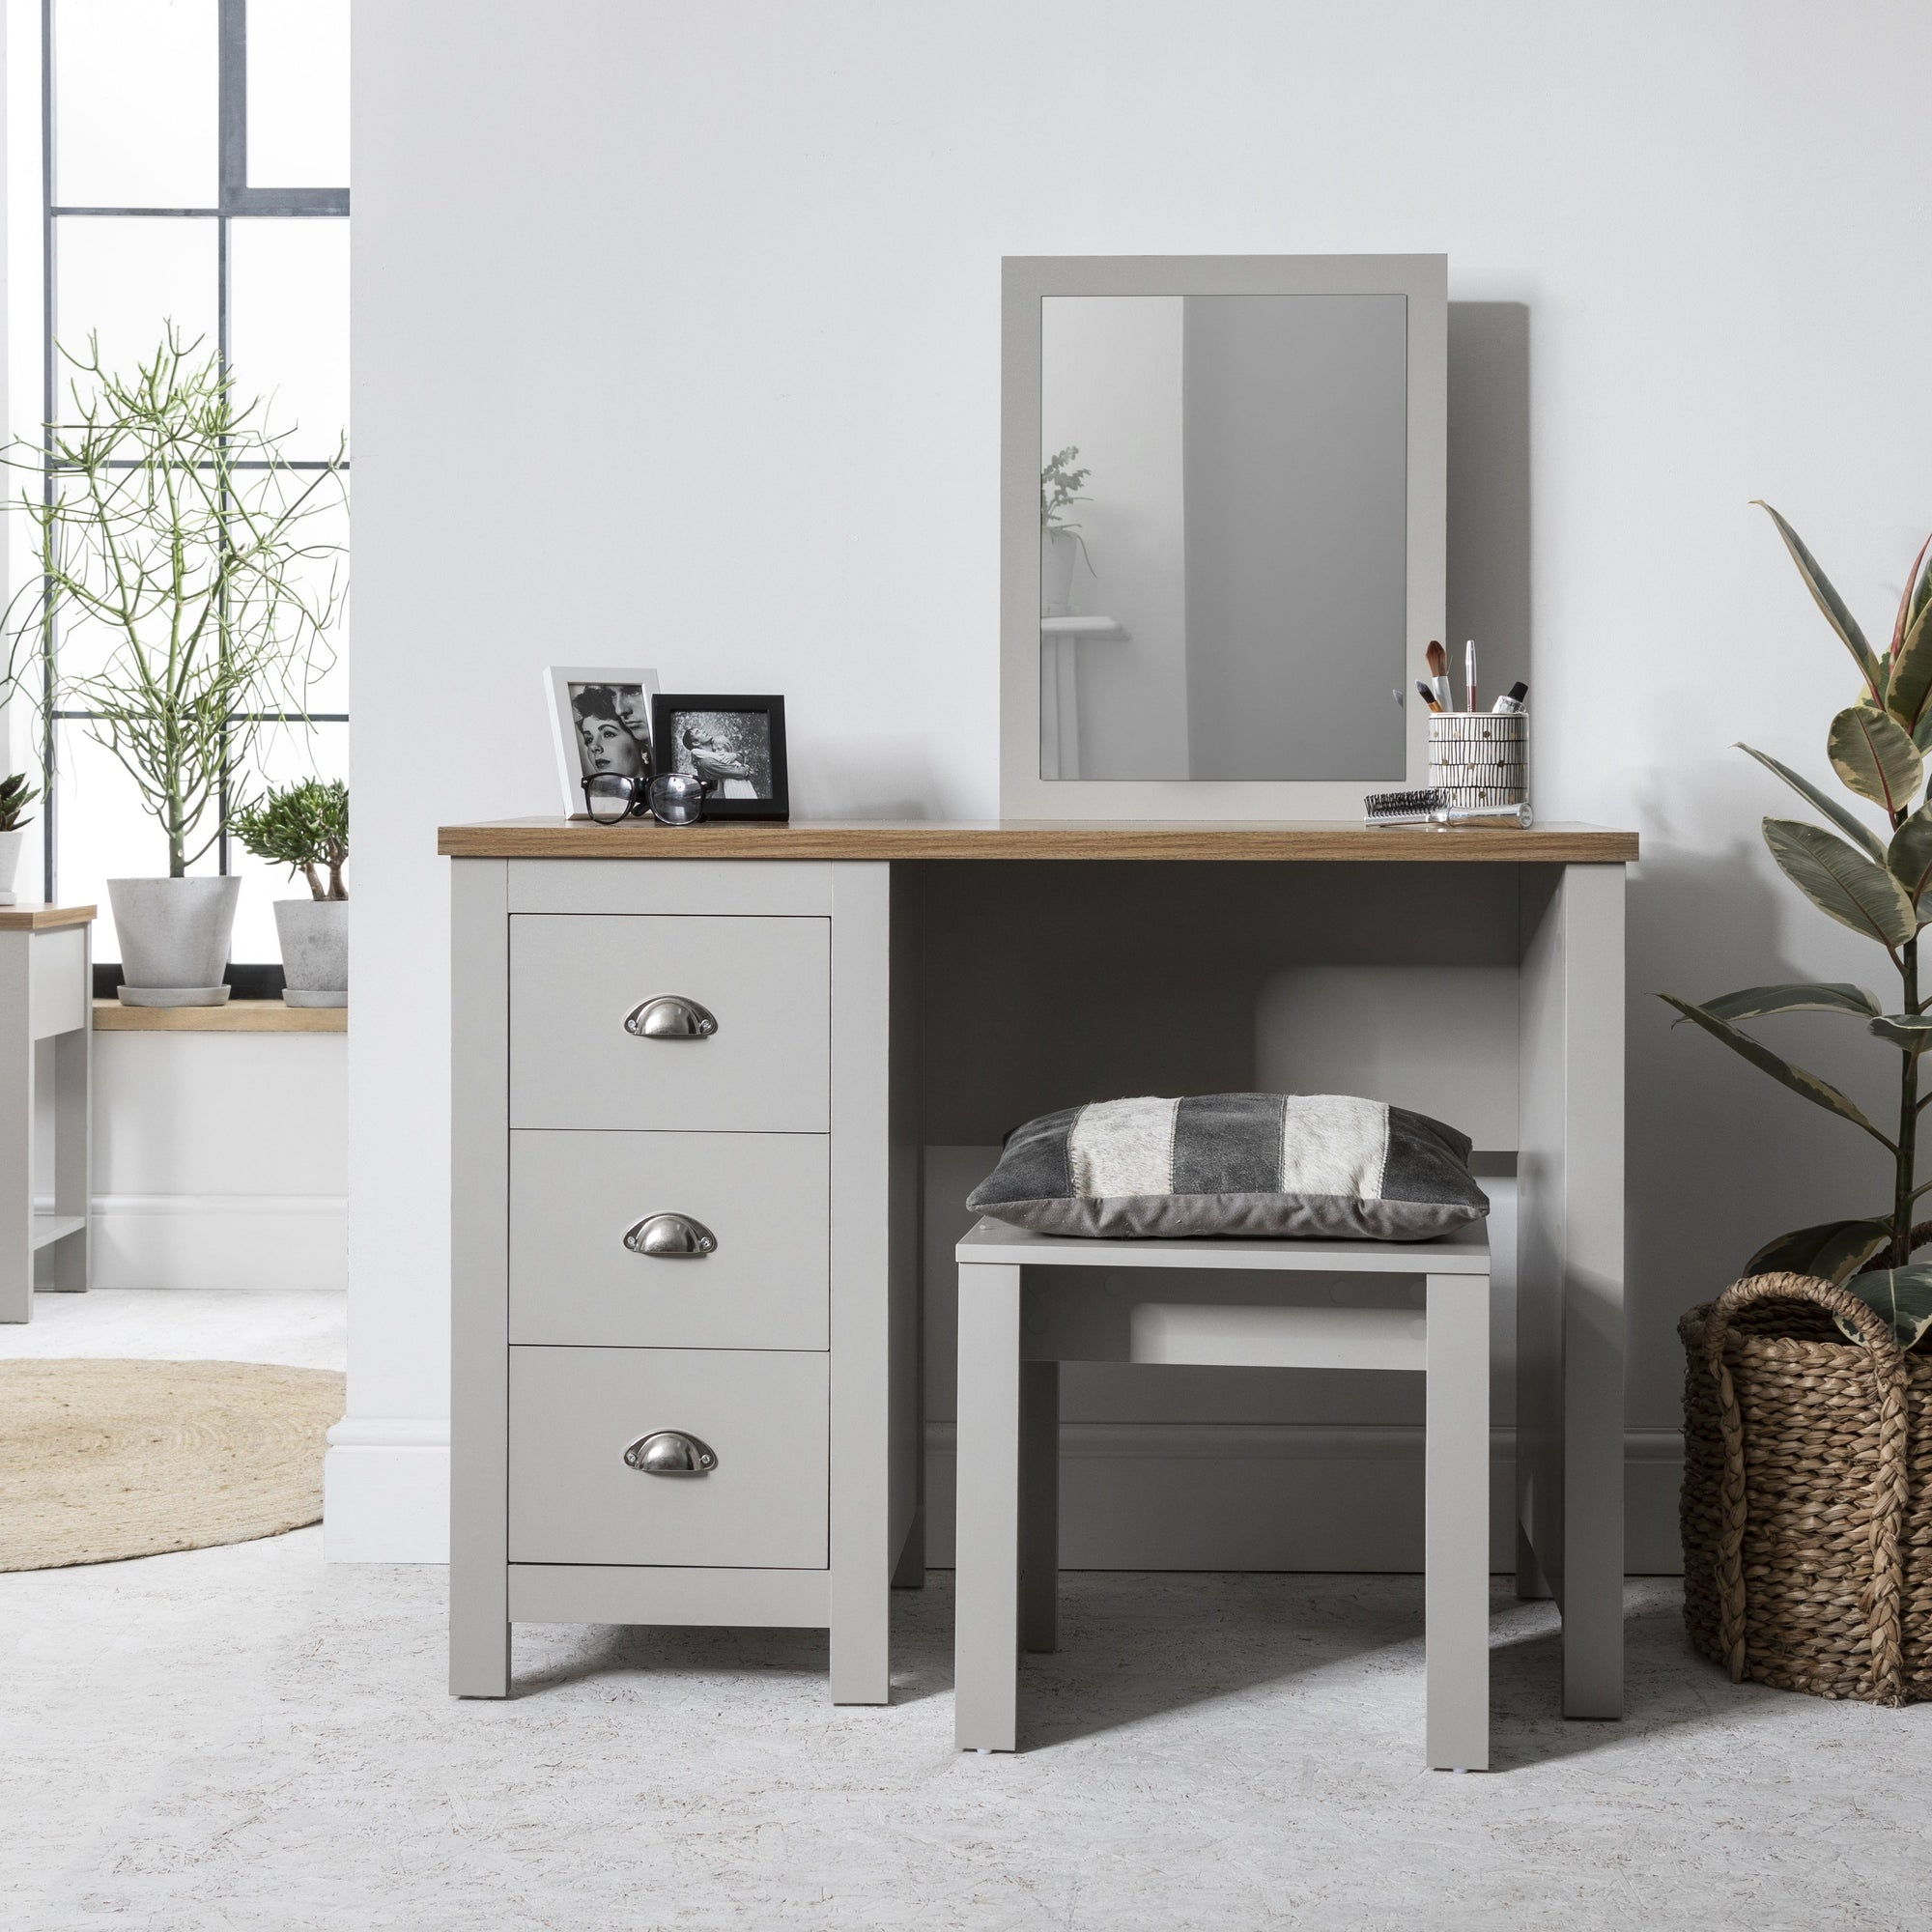 Bampton Dressing Table with Stool in Grey - Laura James